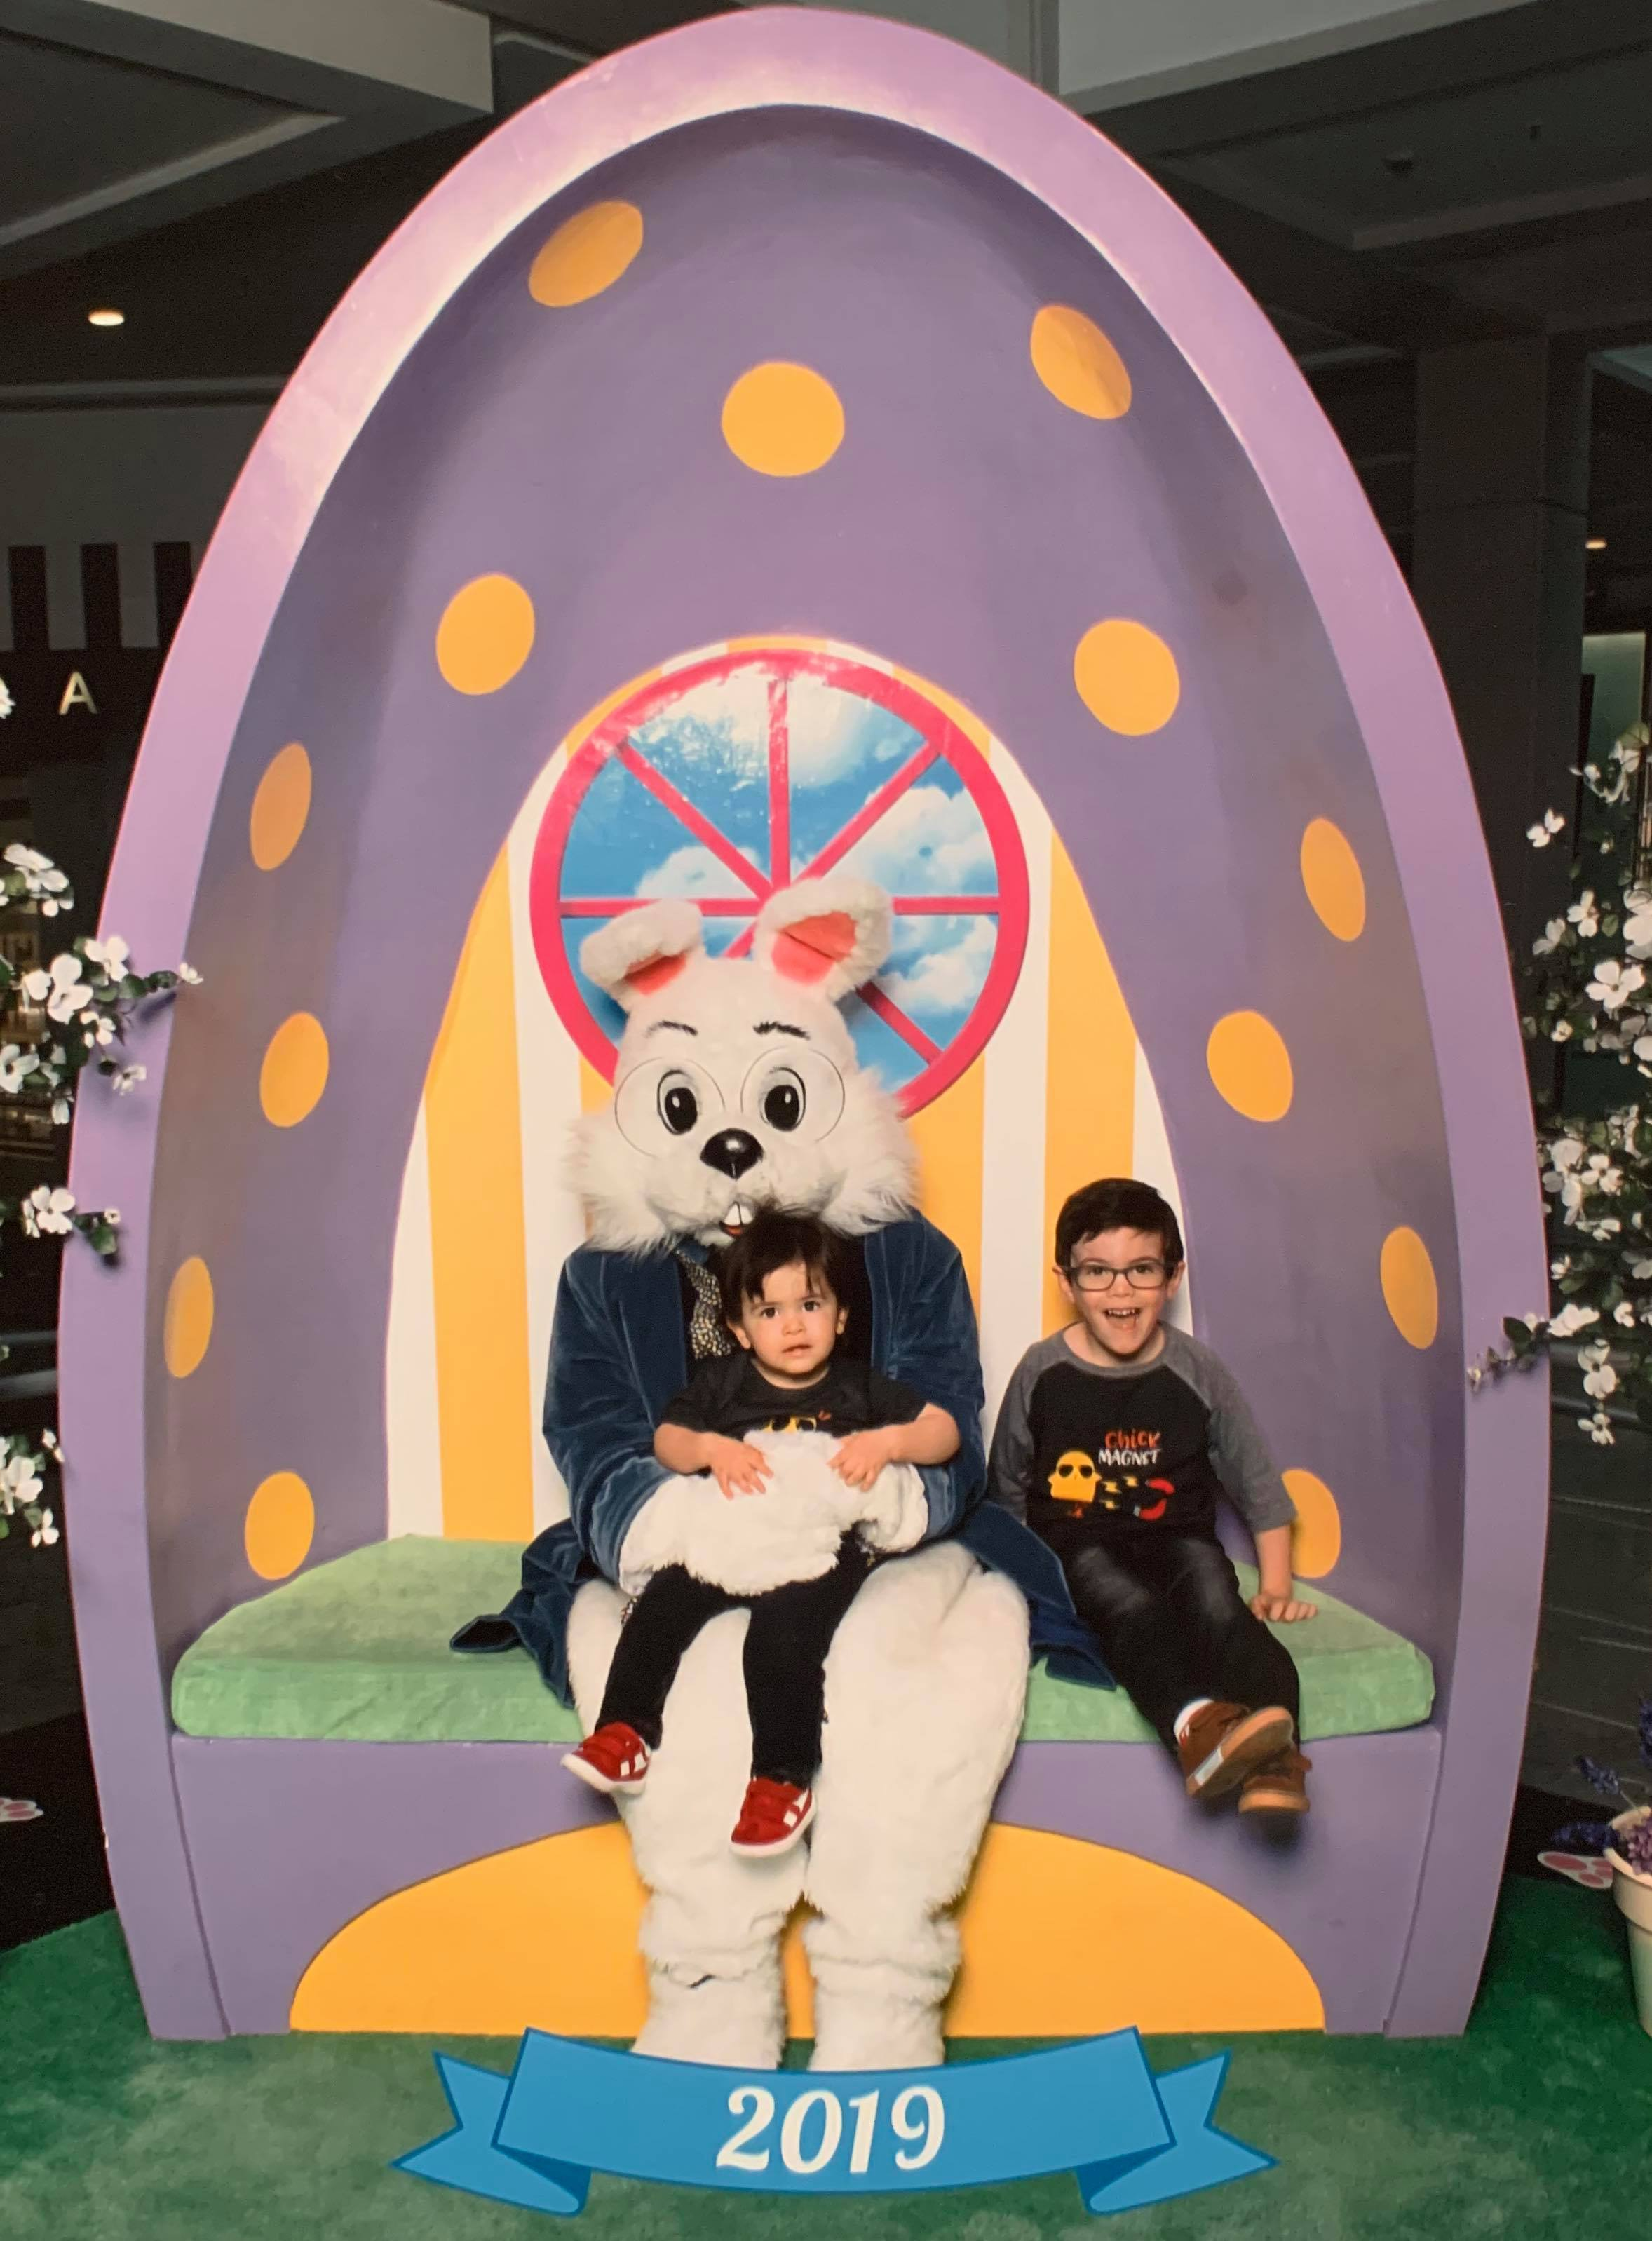 This year, we kept our Easter festivities simple, relaxed, and all about spring fun for the kids. It was our best one yet!